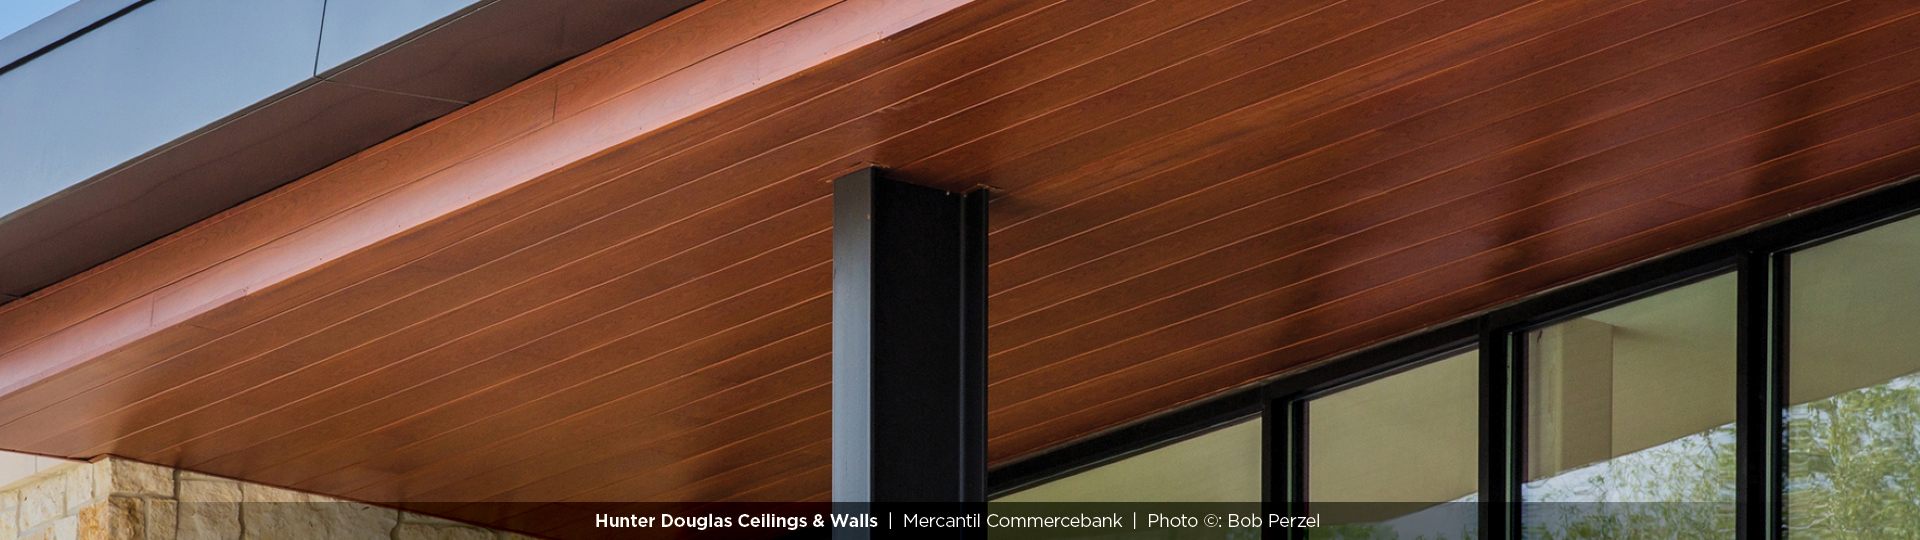 150F - Linear Metal Soffit System - Specialty Ceilings and Walls